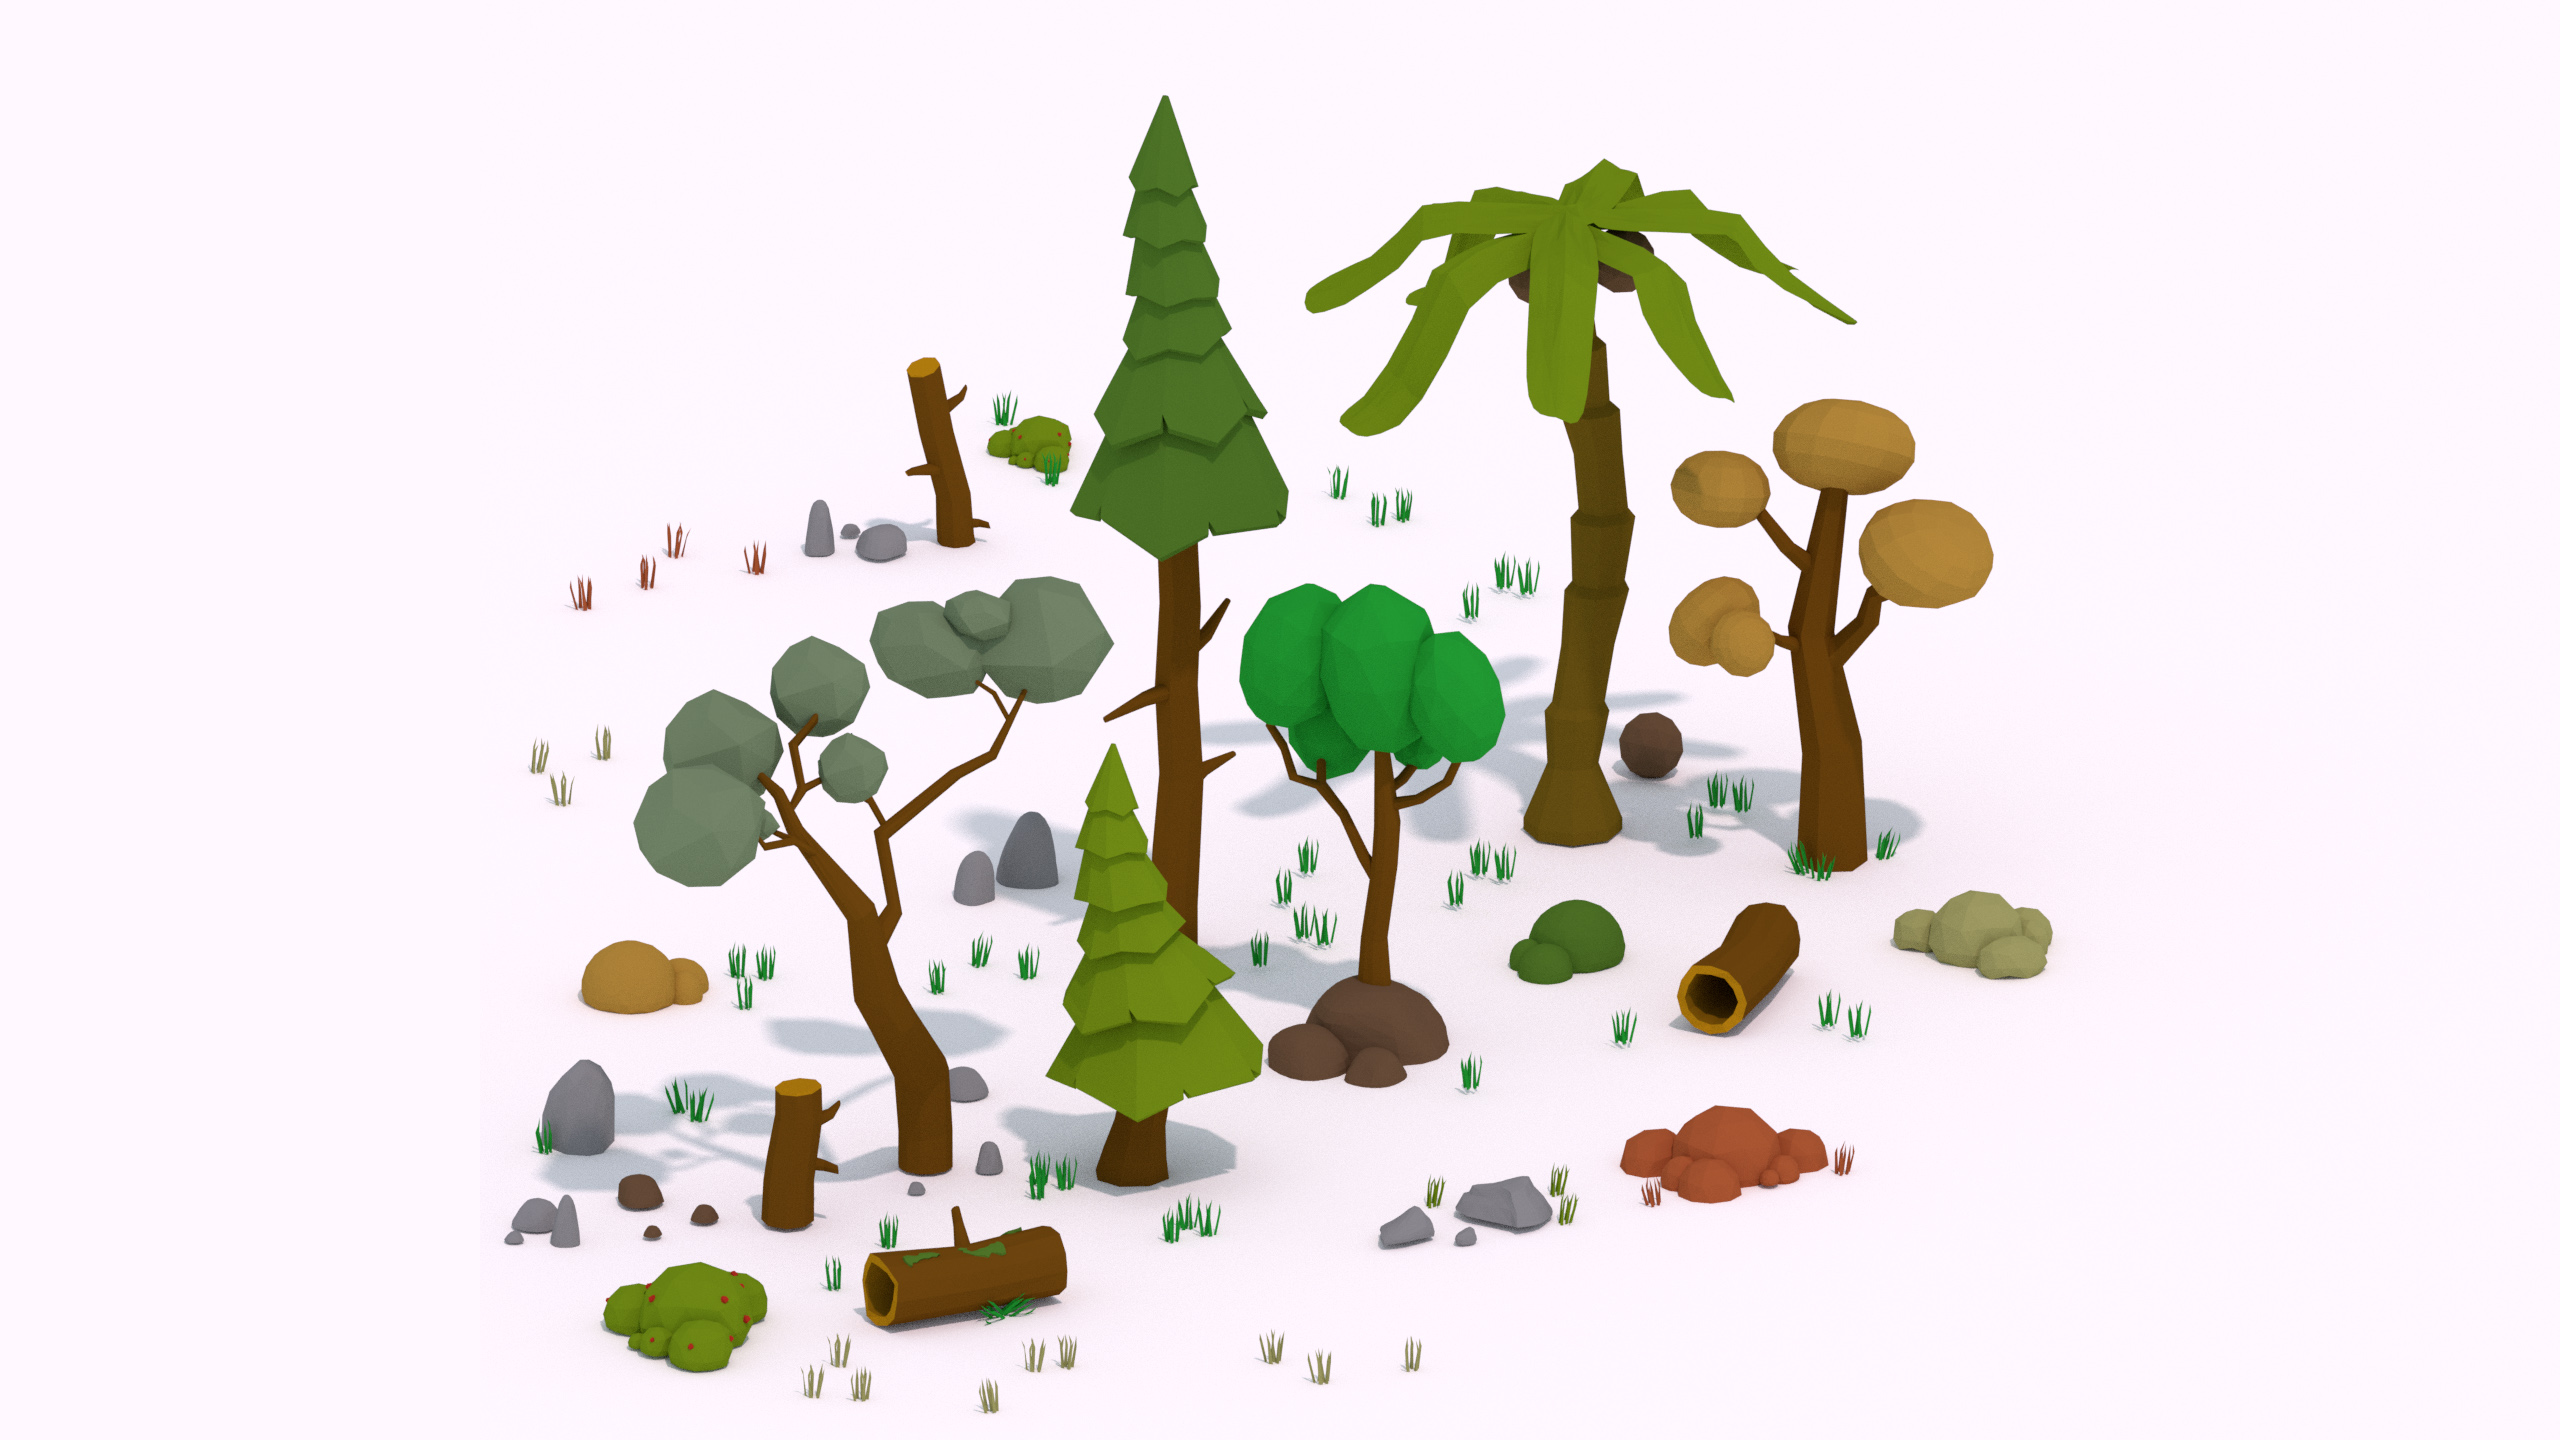 PROJECT: Low Poly - Trees and Foliage